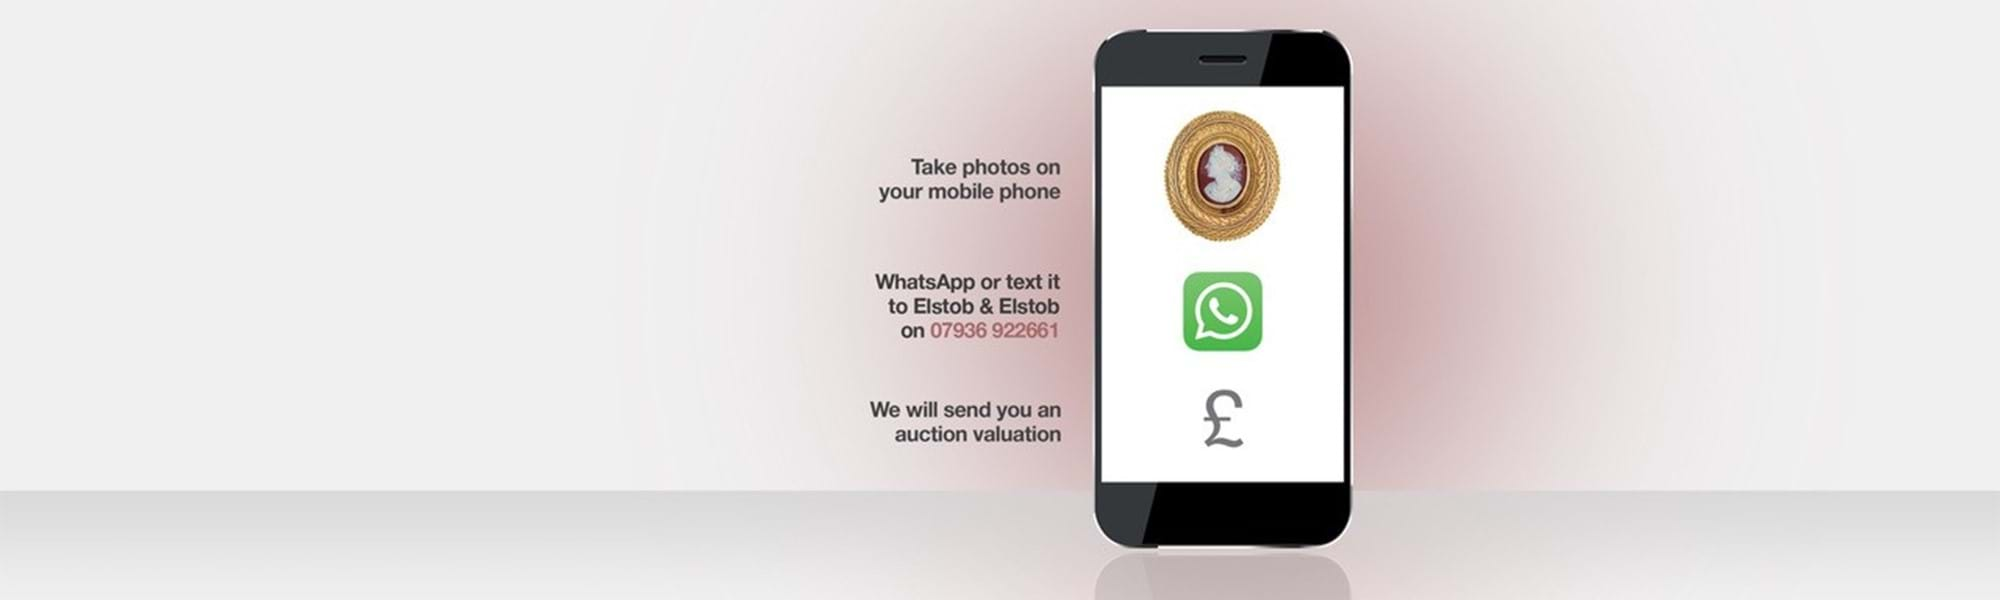 Whatsapp Valuations Image